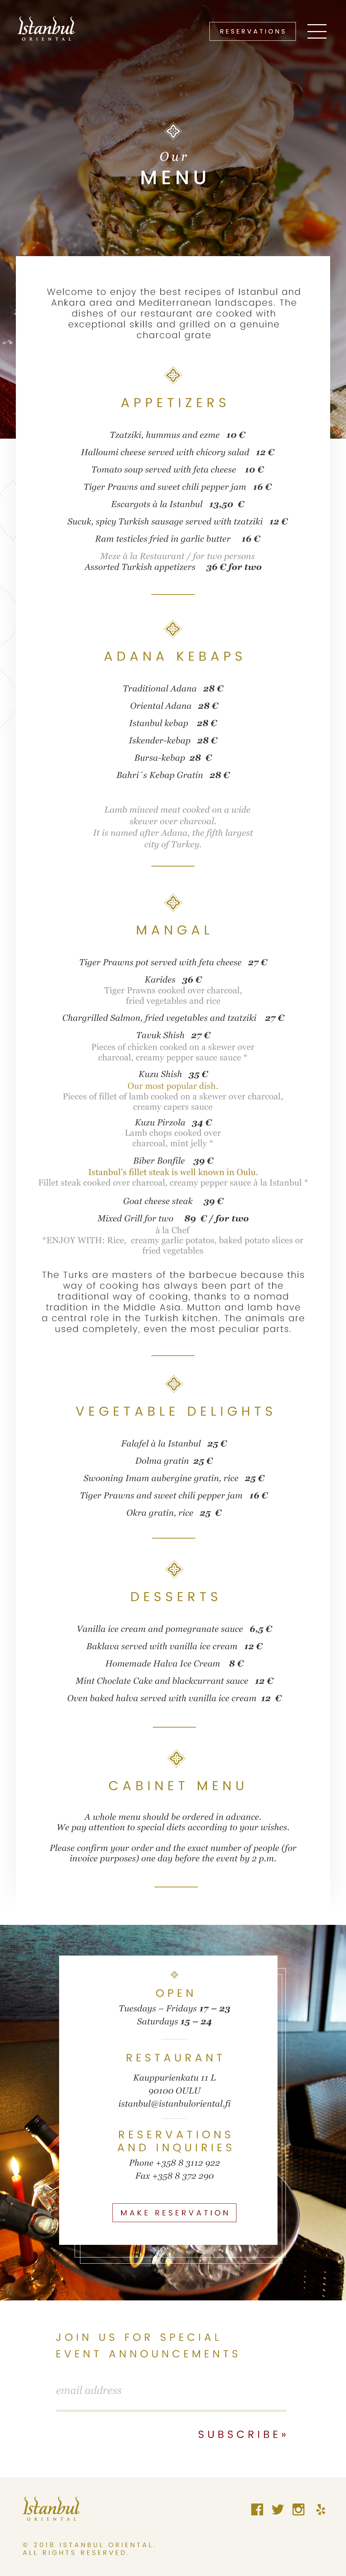 Website redesign for high-end turkish-style restaurant